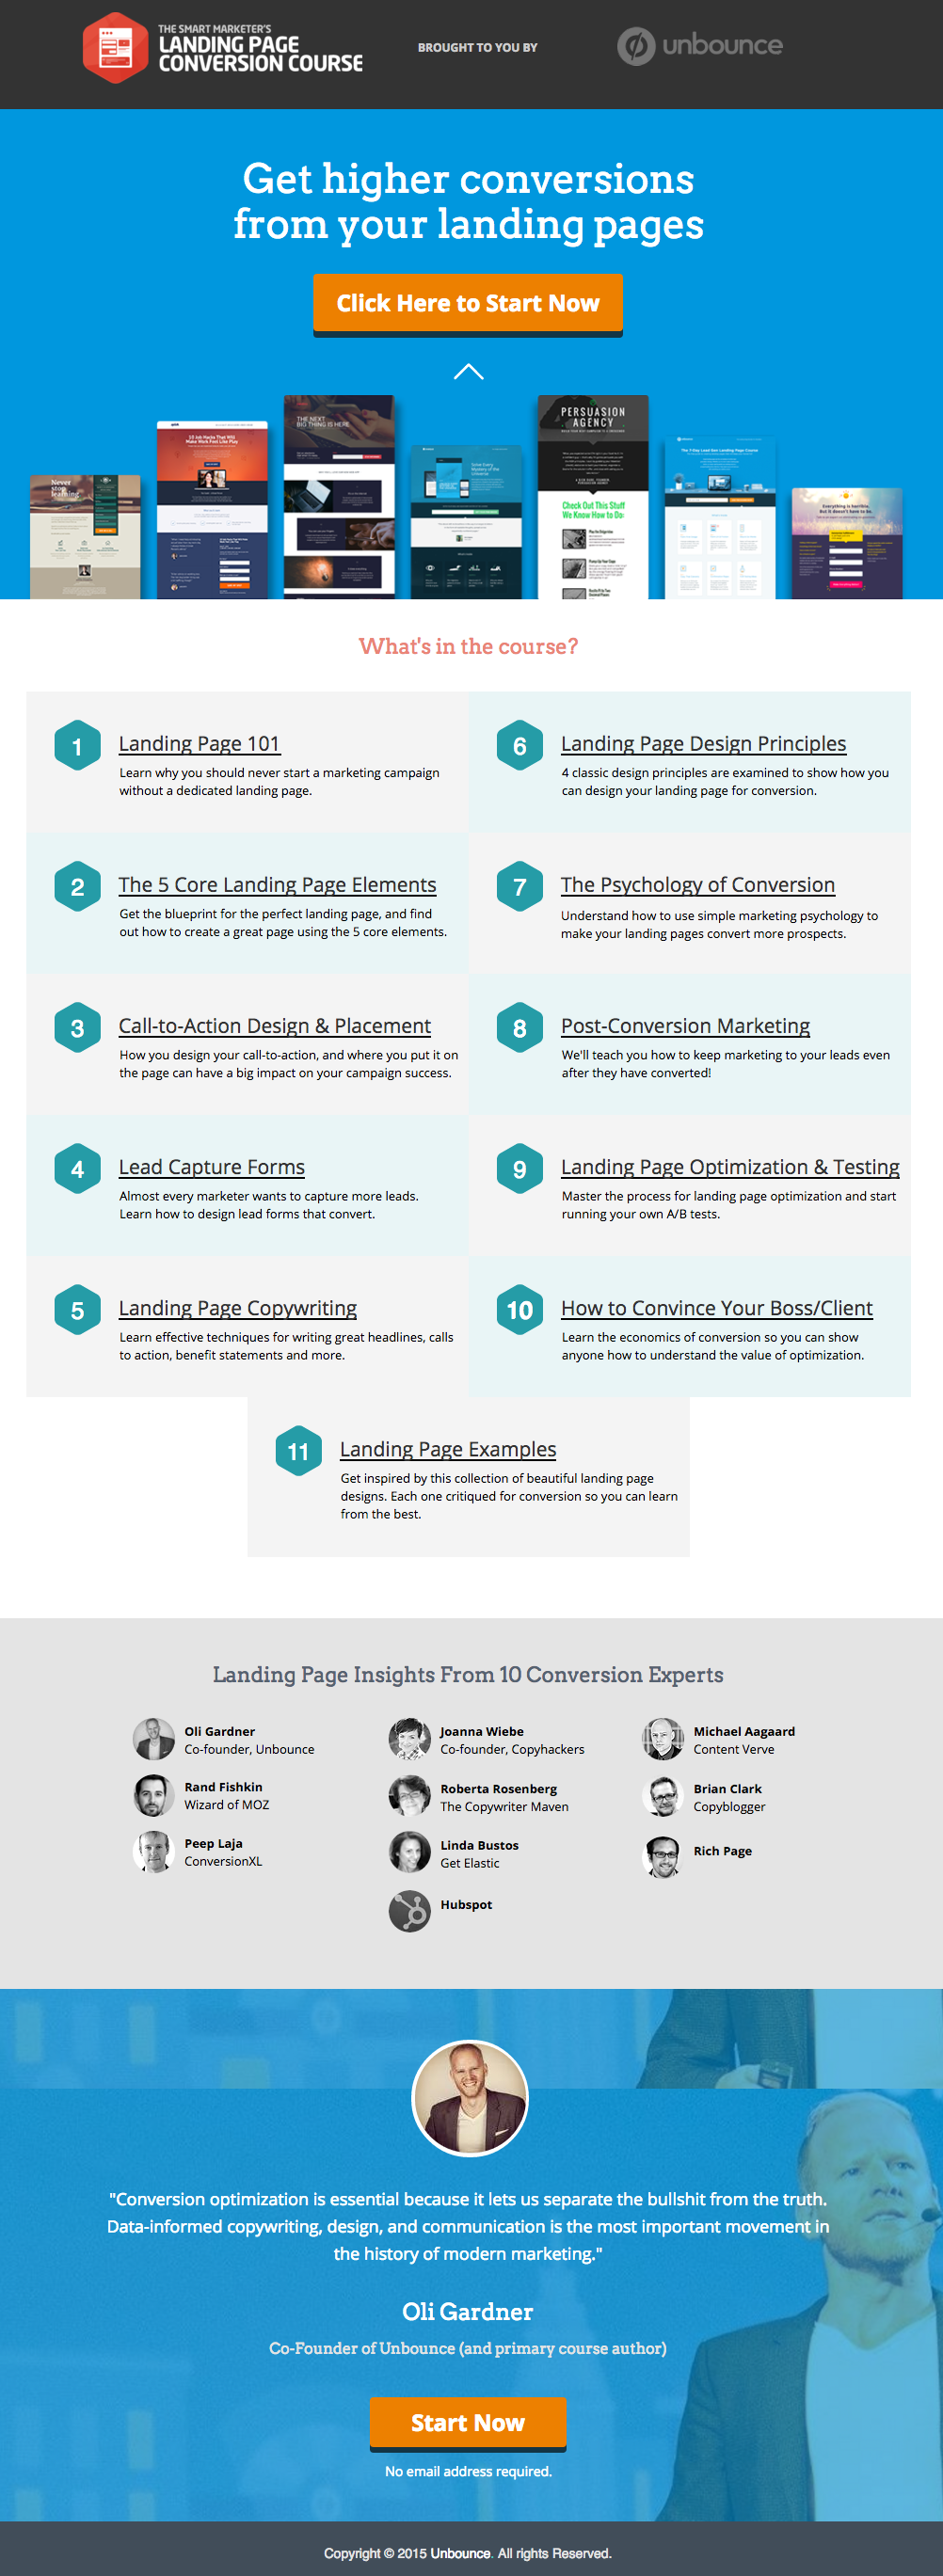 unbounce-landing-page-example.png